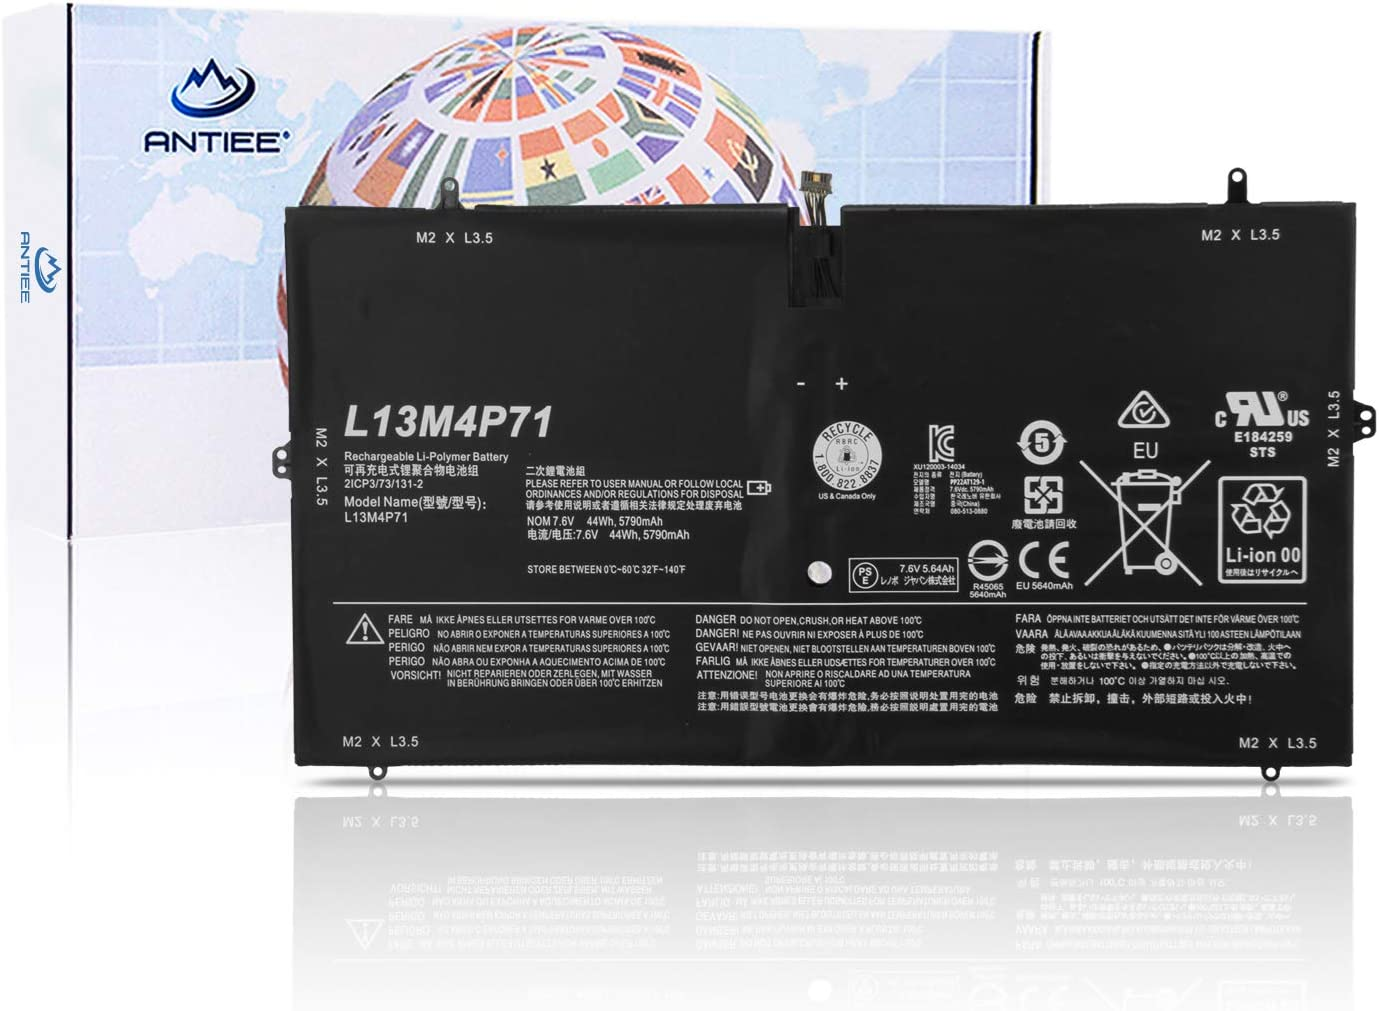 ANTIEE L13M4P71 L14S4P71 Laptop Battery Replacement for Lenovo Yoga 3 Pro 1370 Pro-1370-80HE Pro-5Y71 Pro-I5Y51 Pro-I5Y70 Pro-I5Y71 Series 7.6V 44Wh 5790mAh